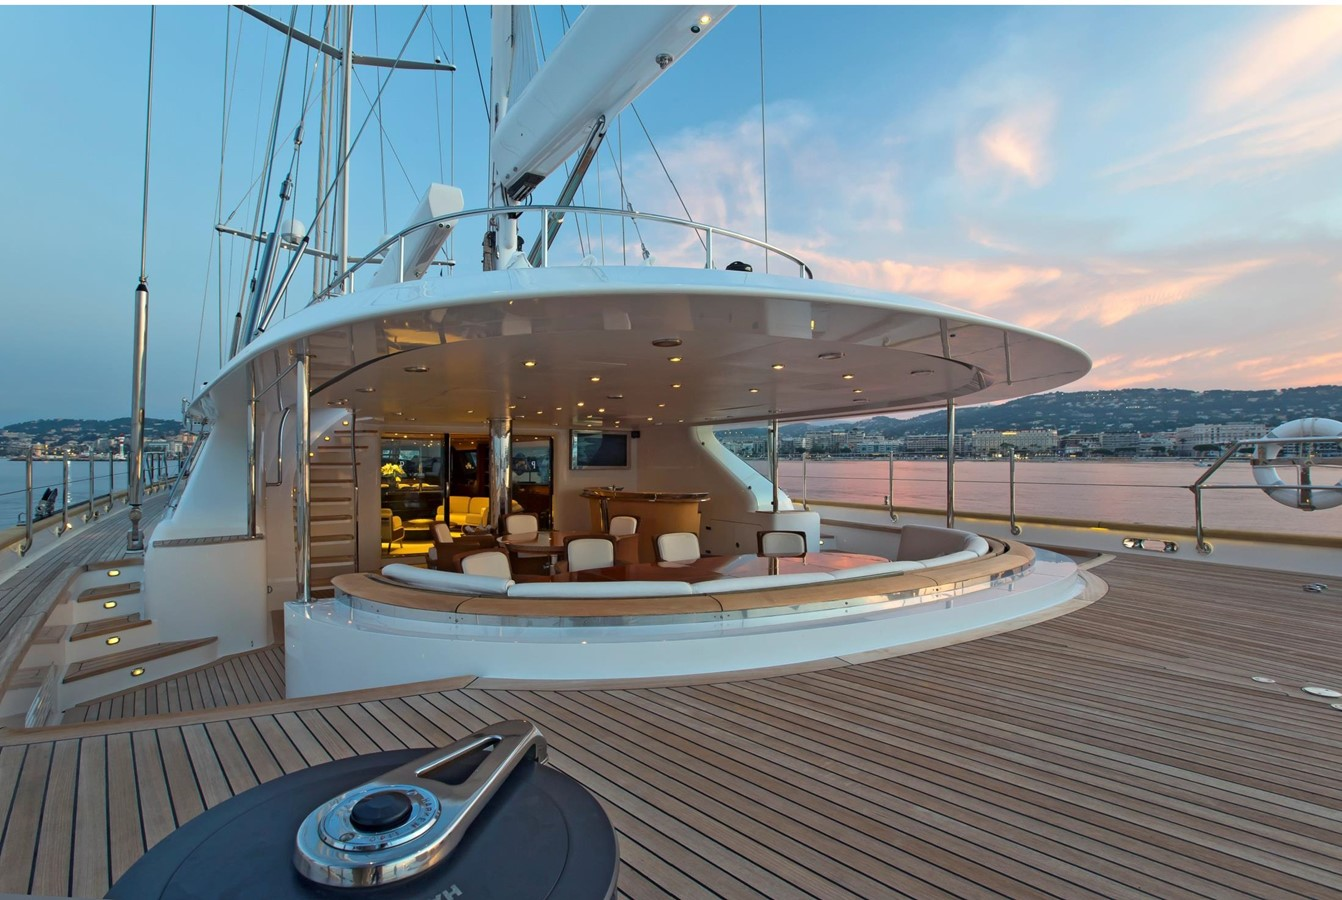 176 PERINI NAVI For Sale